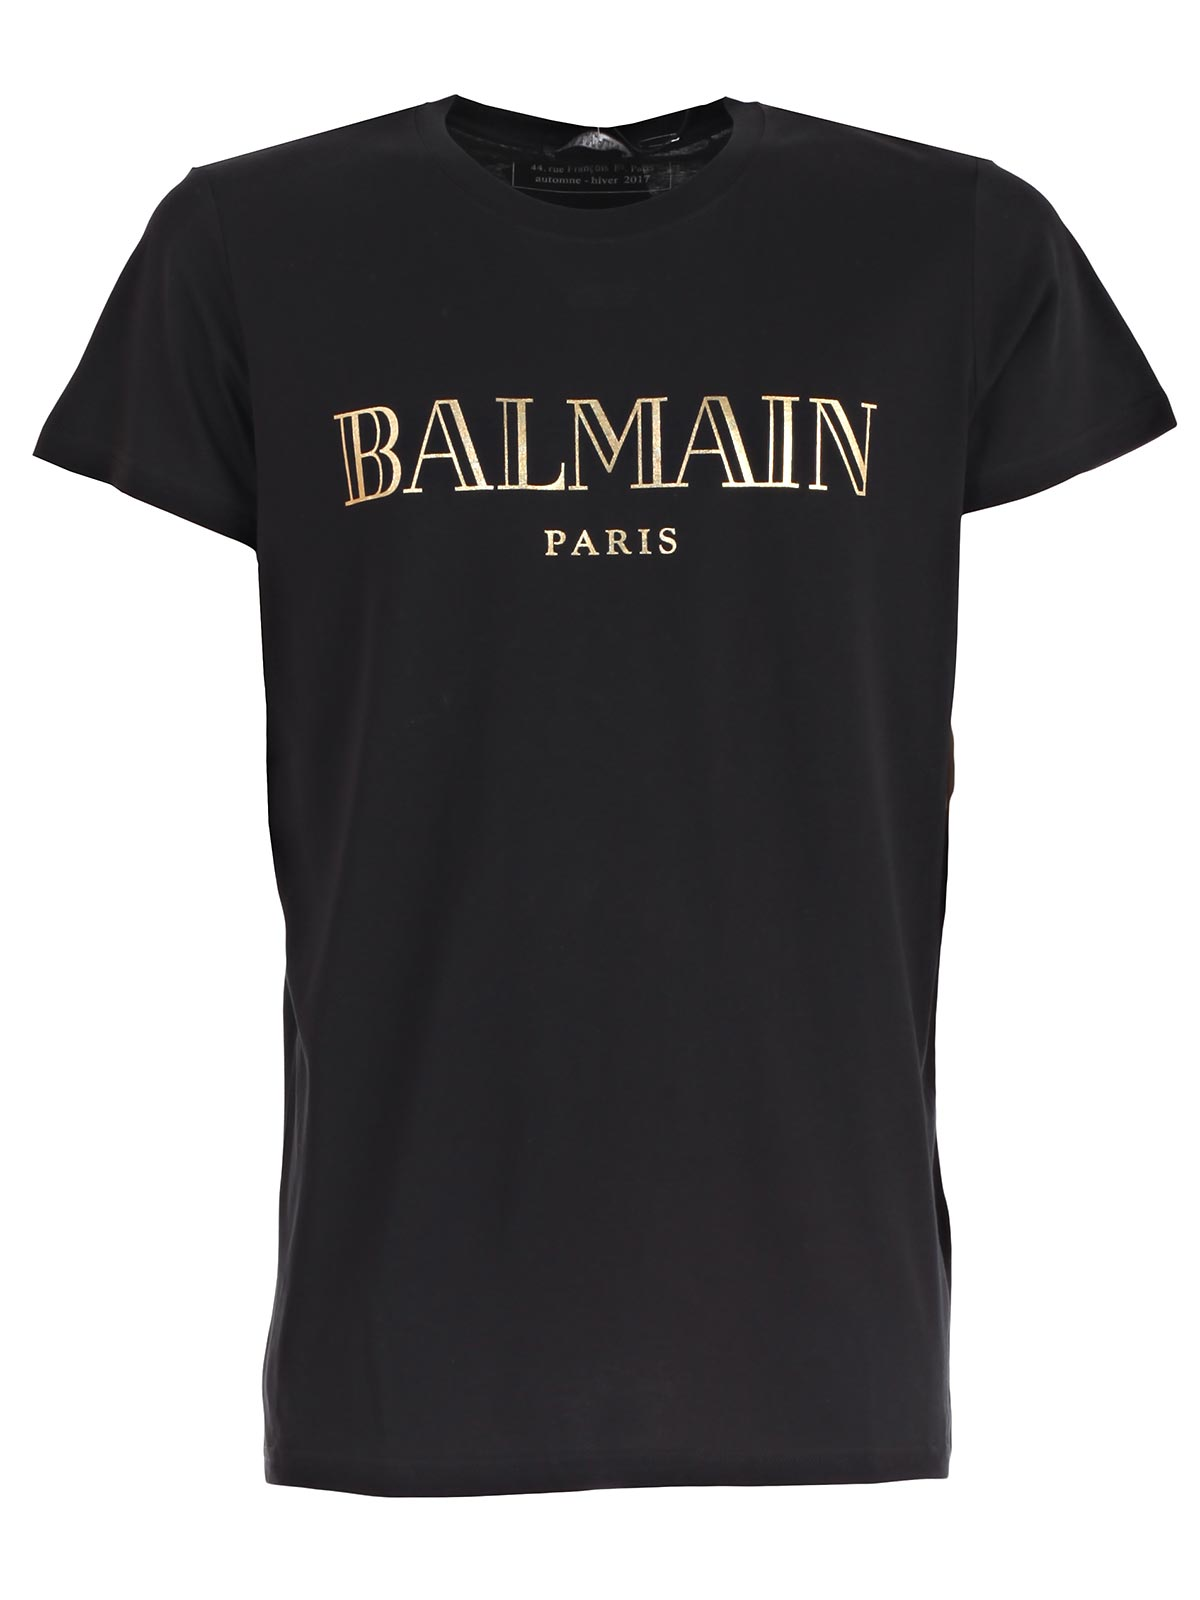 bernardelli store balmain t shirt. Black Bedroom Furniture Sets. Home Design Ideas